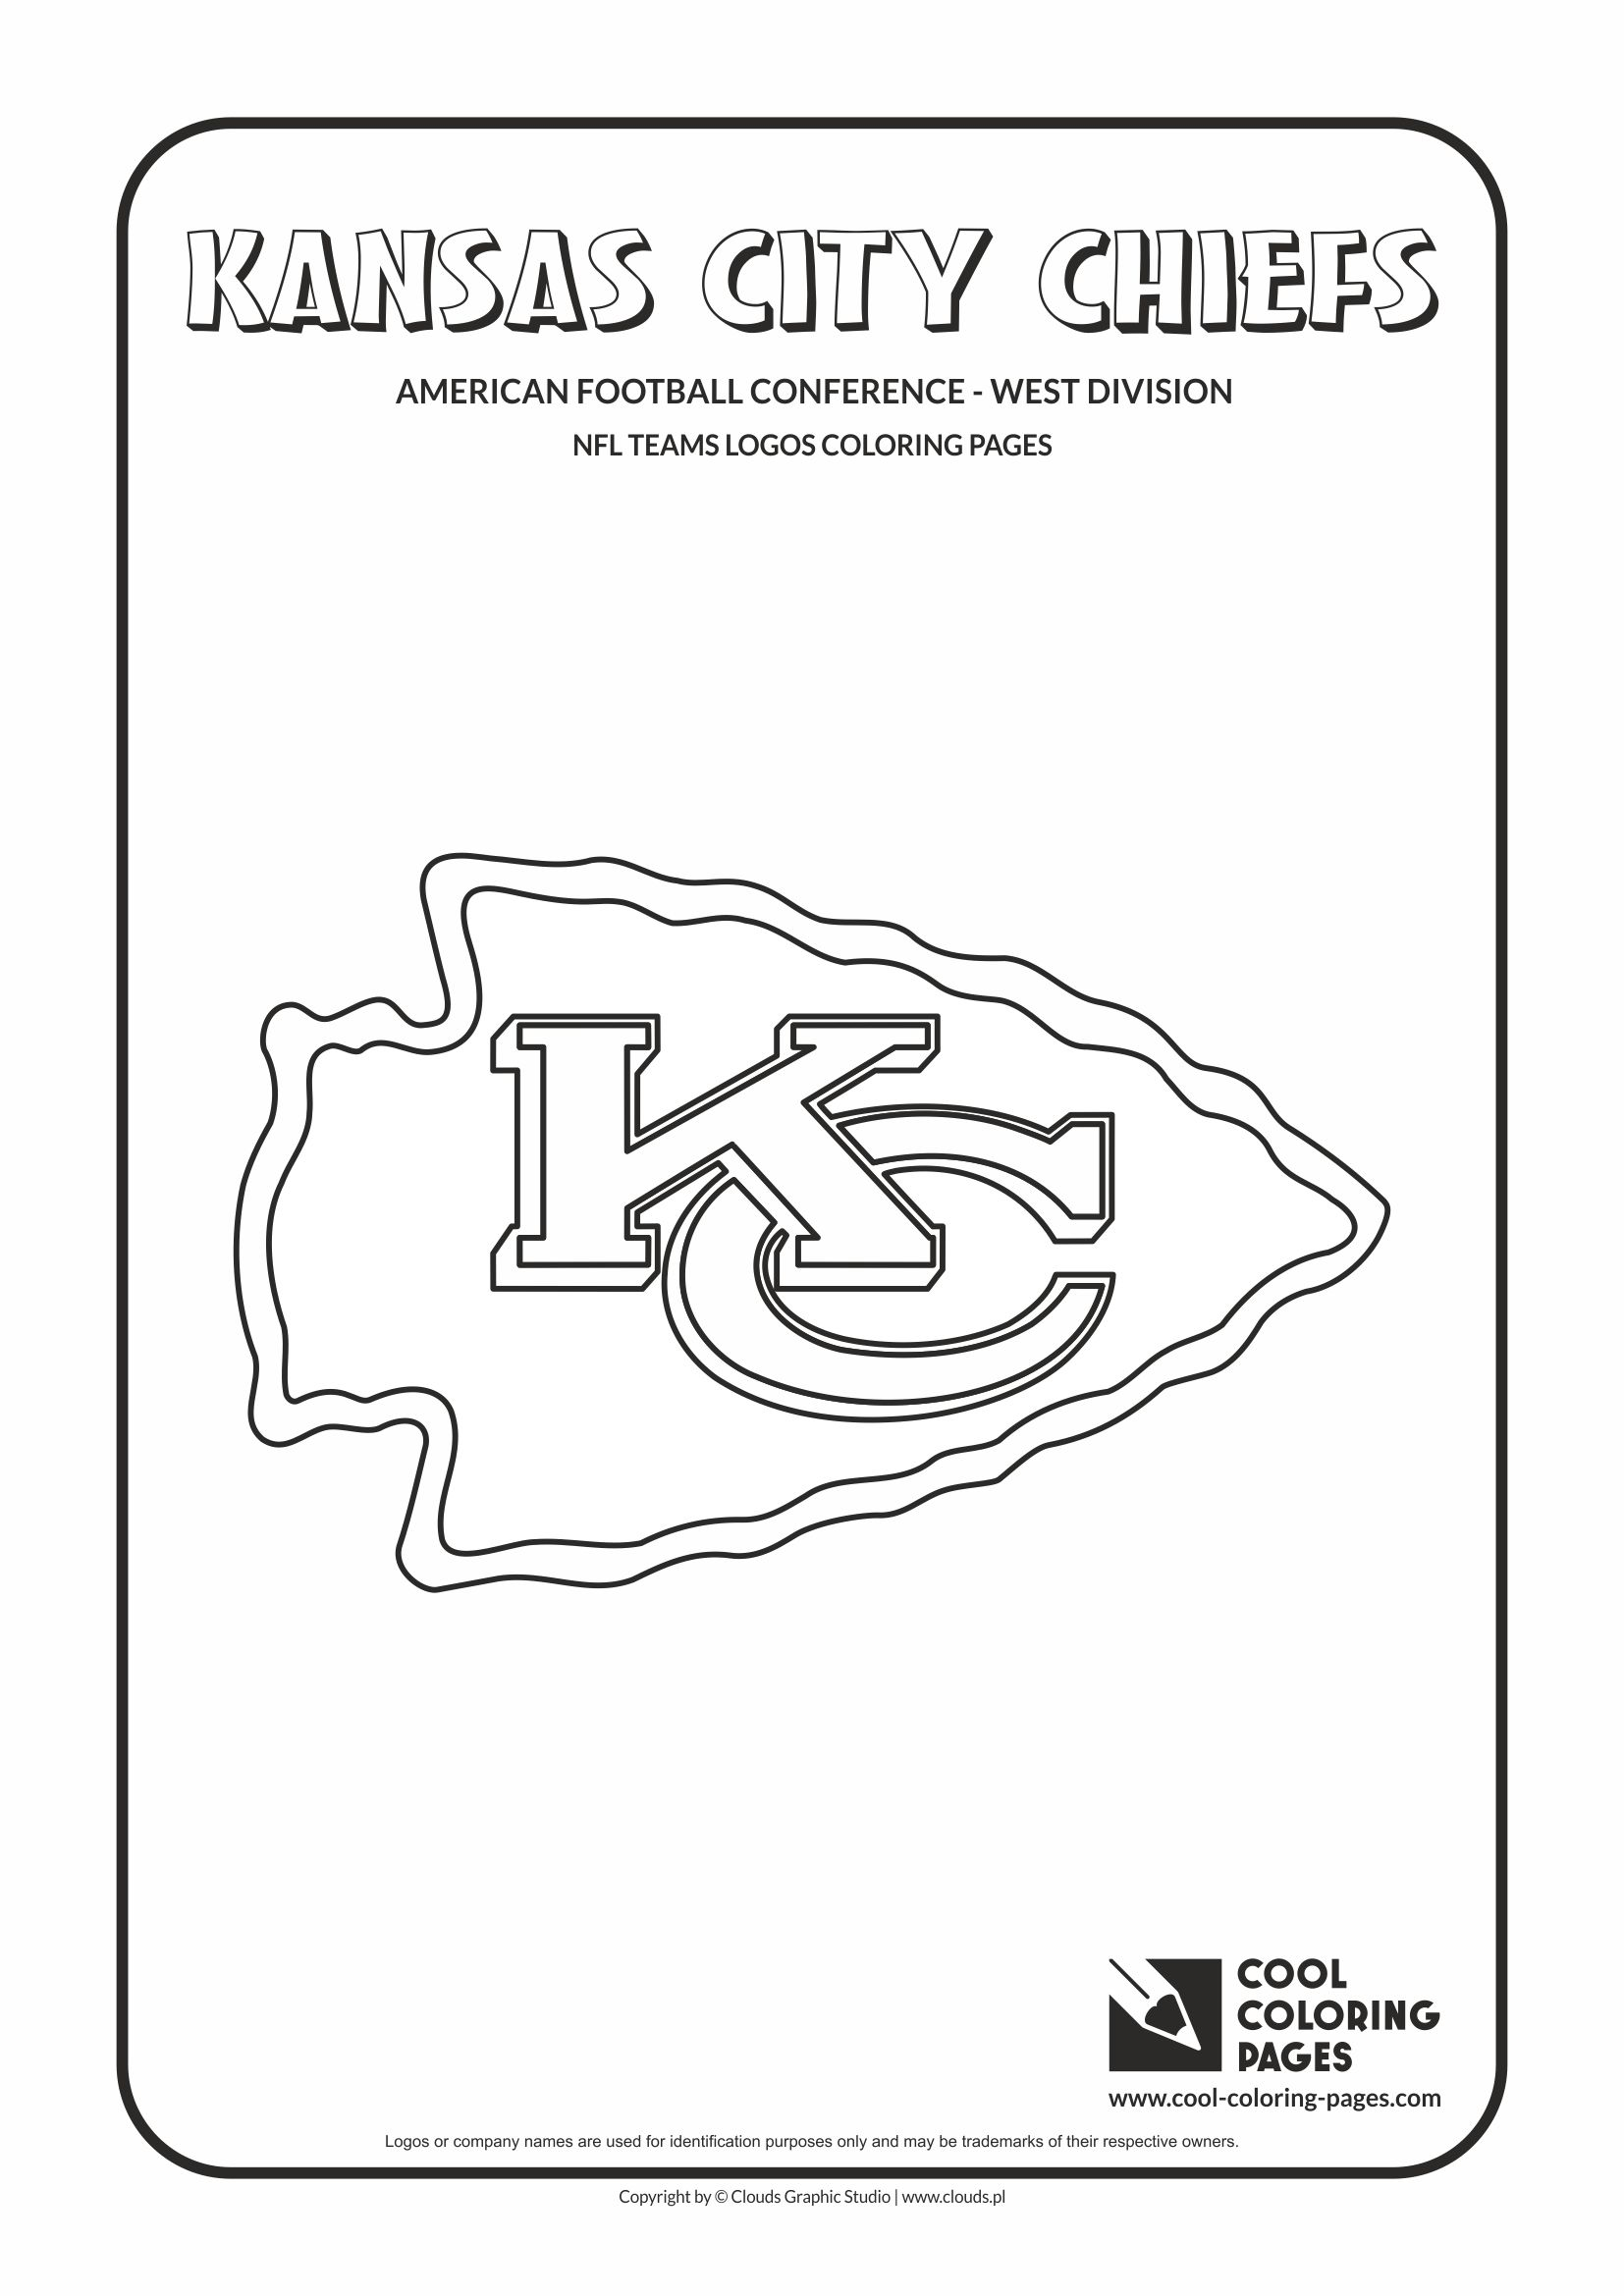 Cool Coloring Pages Kansas City Chiefs - NFL American football teams ...